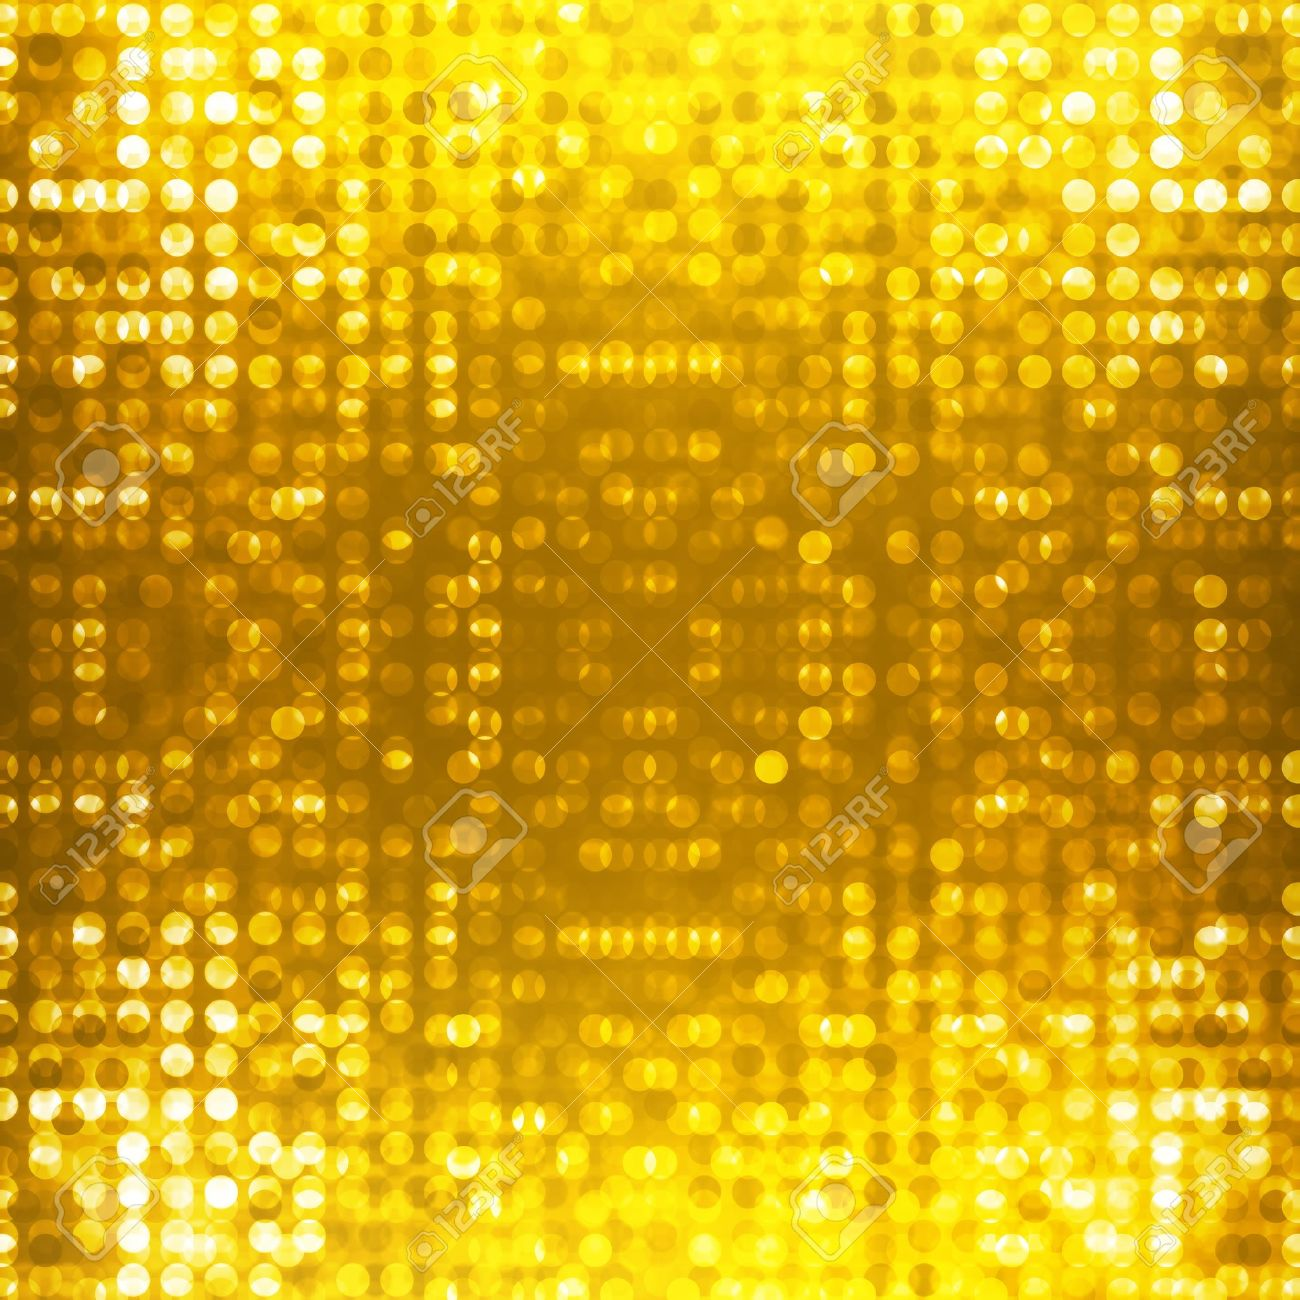 Brass Gold Texture Gold Texture Background